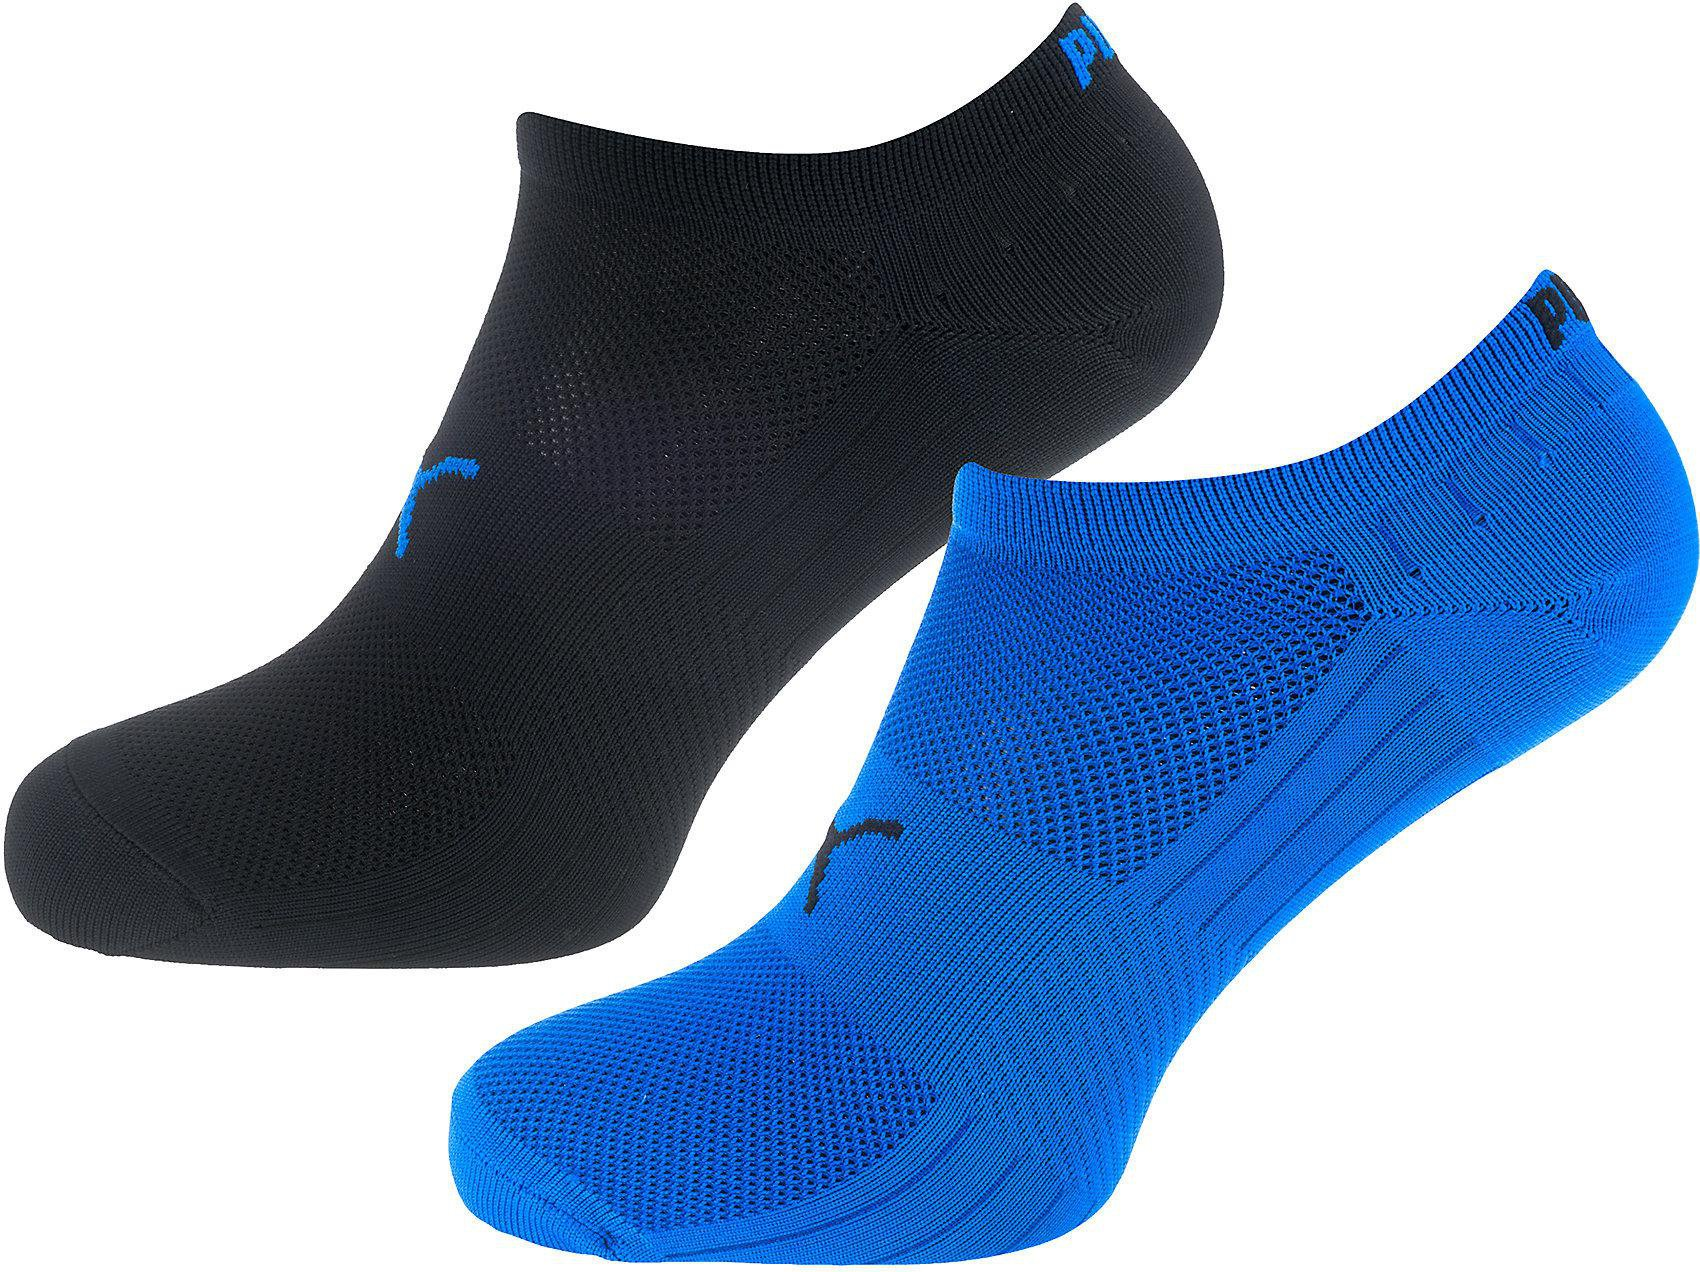 huge selection of 75730 e884b Puma Sneaker Socken Herren